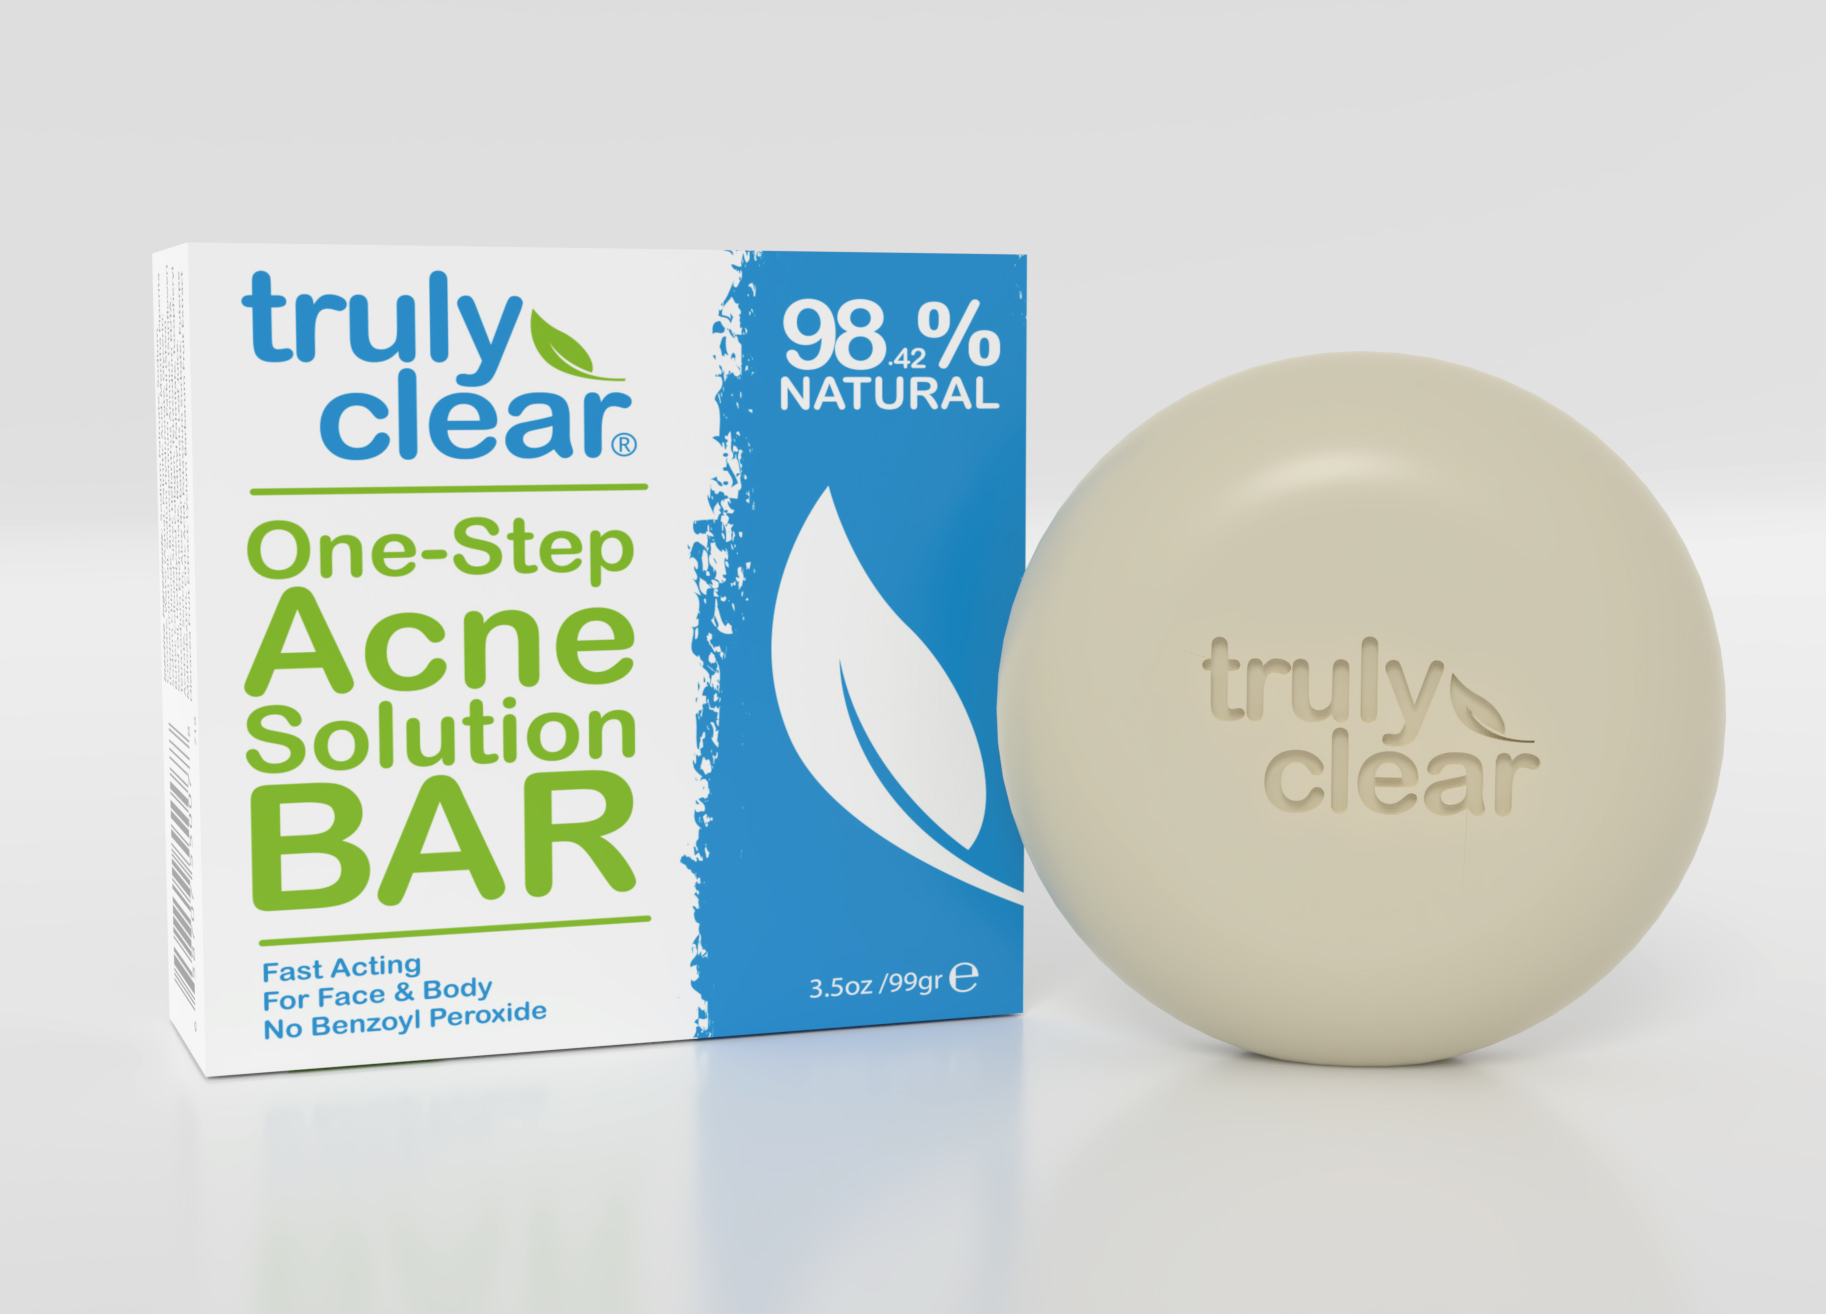 Truly-Clear-soap-and-box_WEB4_1573156512.8636